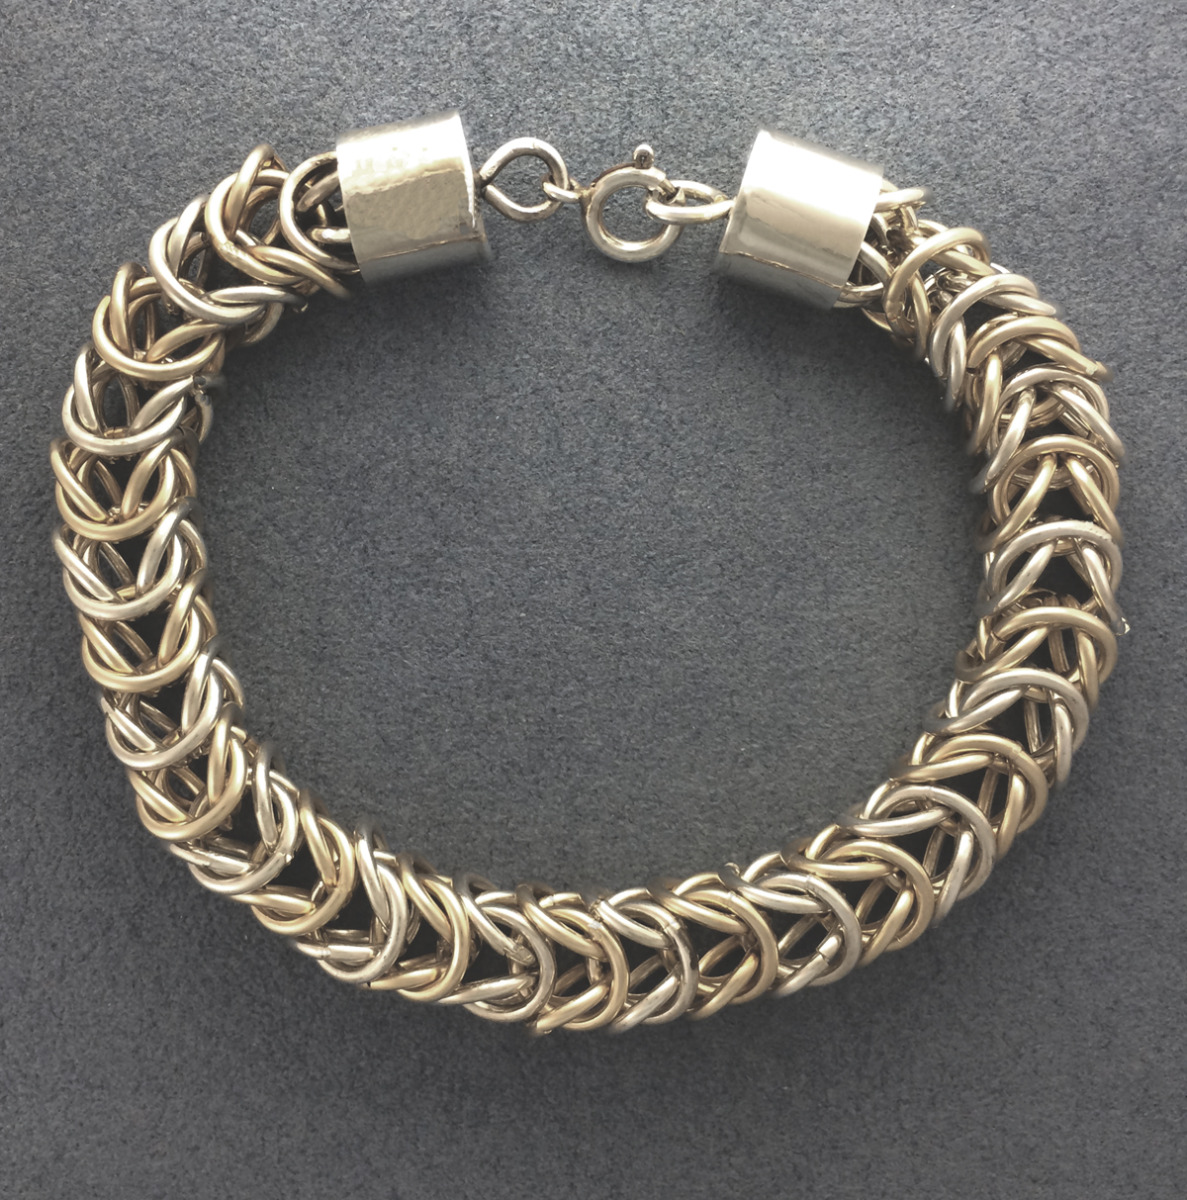 Gold and Silver Chain Maile Bracelet (large view)